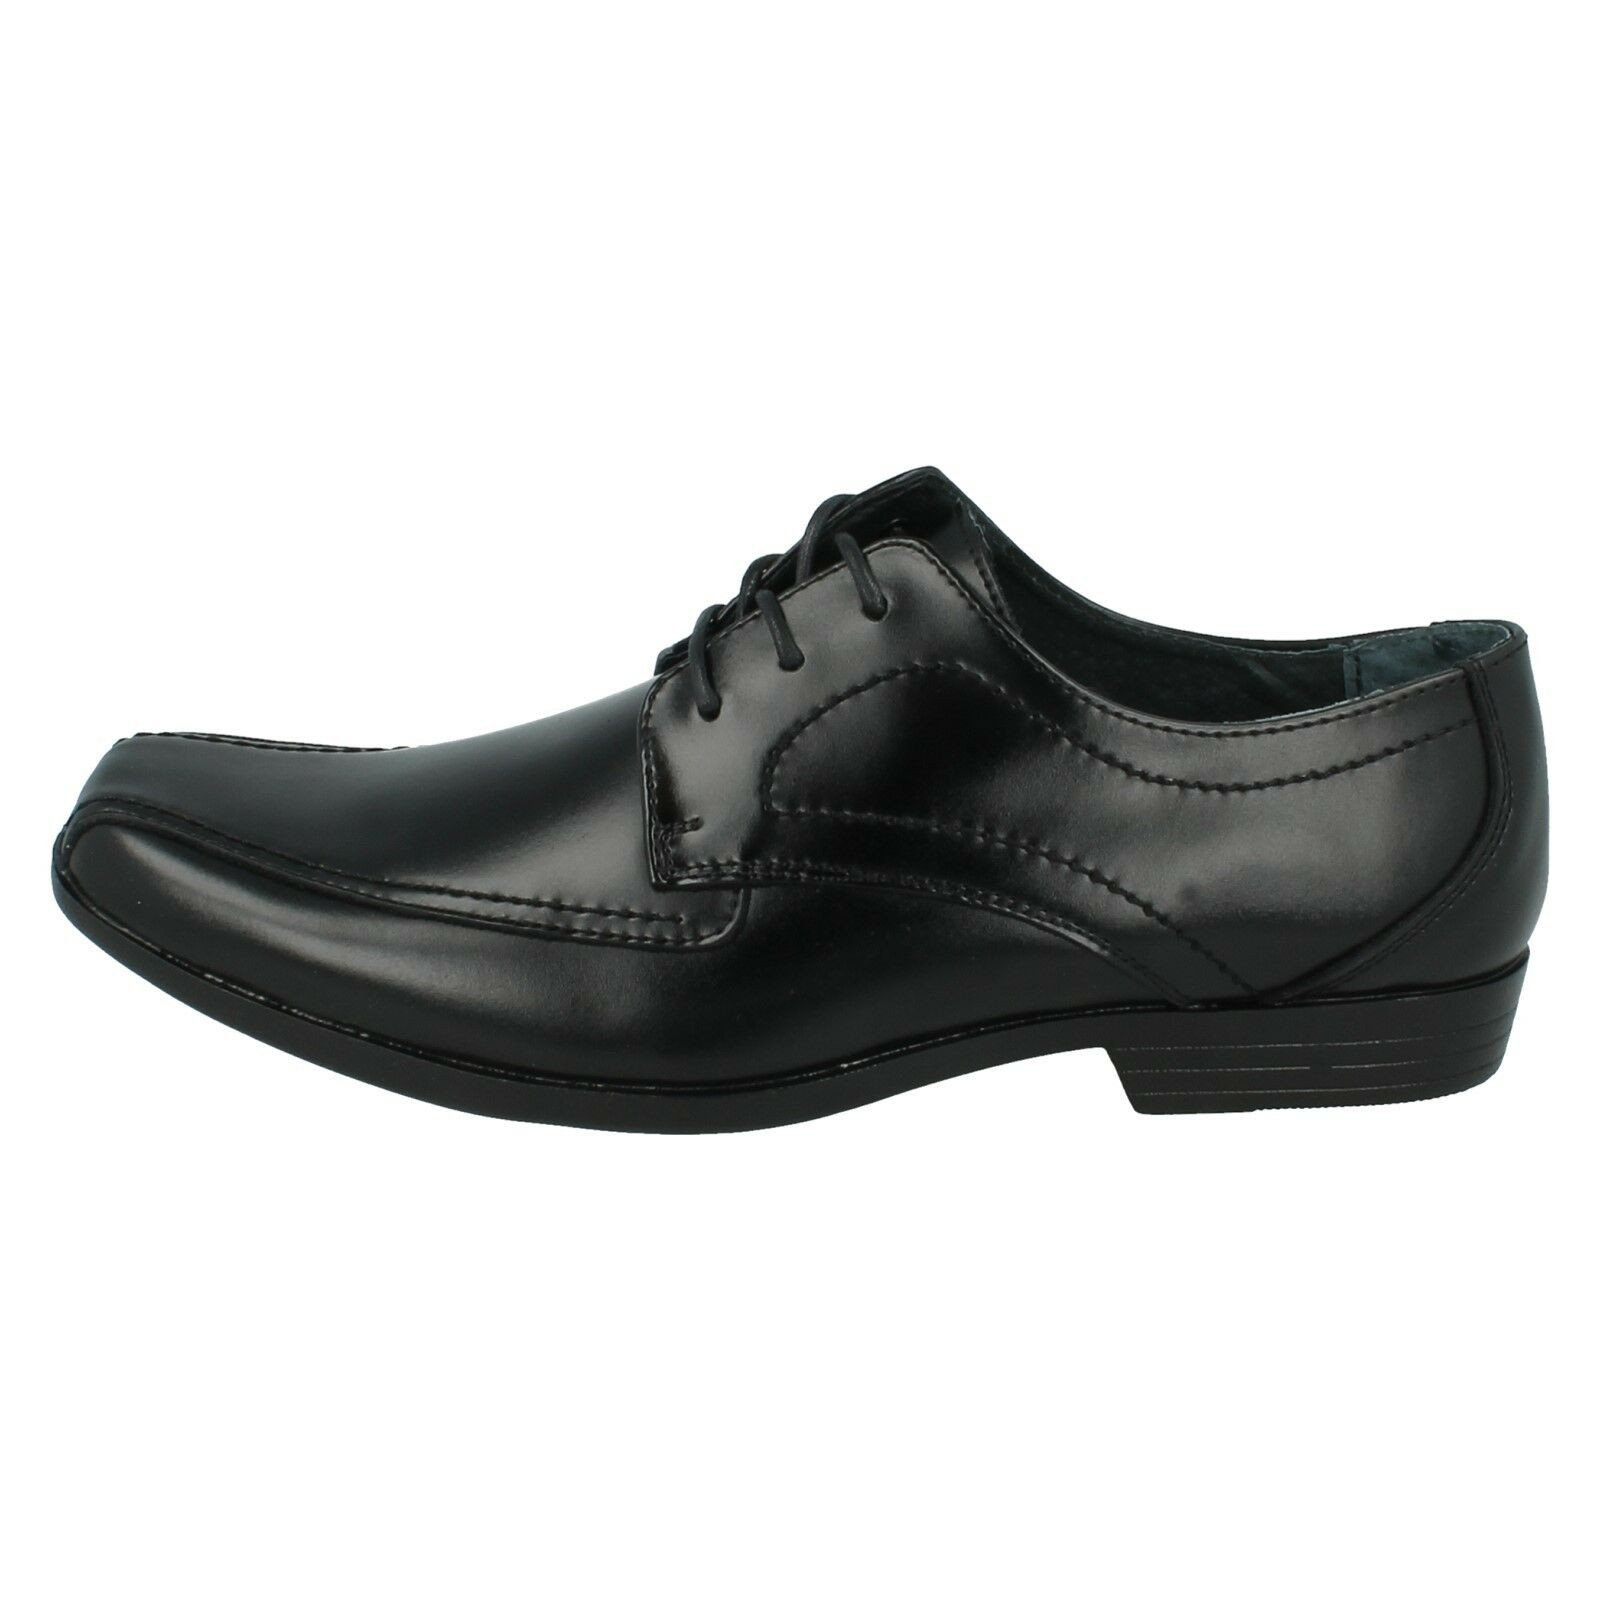 Uomo HUSH PUPPIES LACE UP SQUARE TOE LEATHER RALSTON FORMAL WORK SHOES EASTON RALSTON LEATHER A 6bf62a